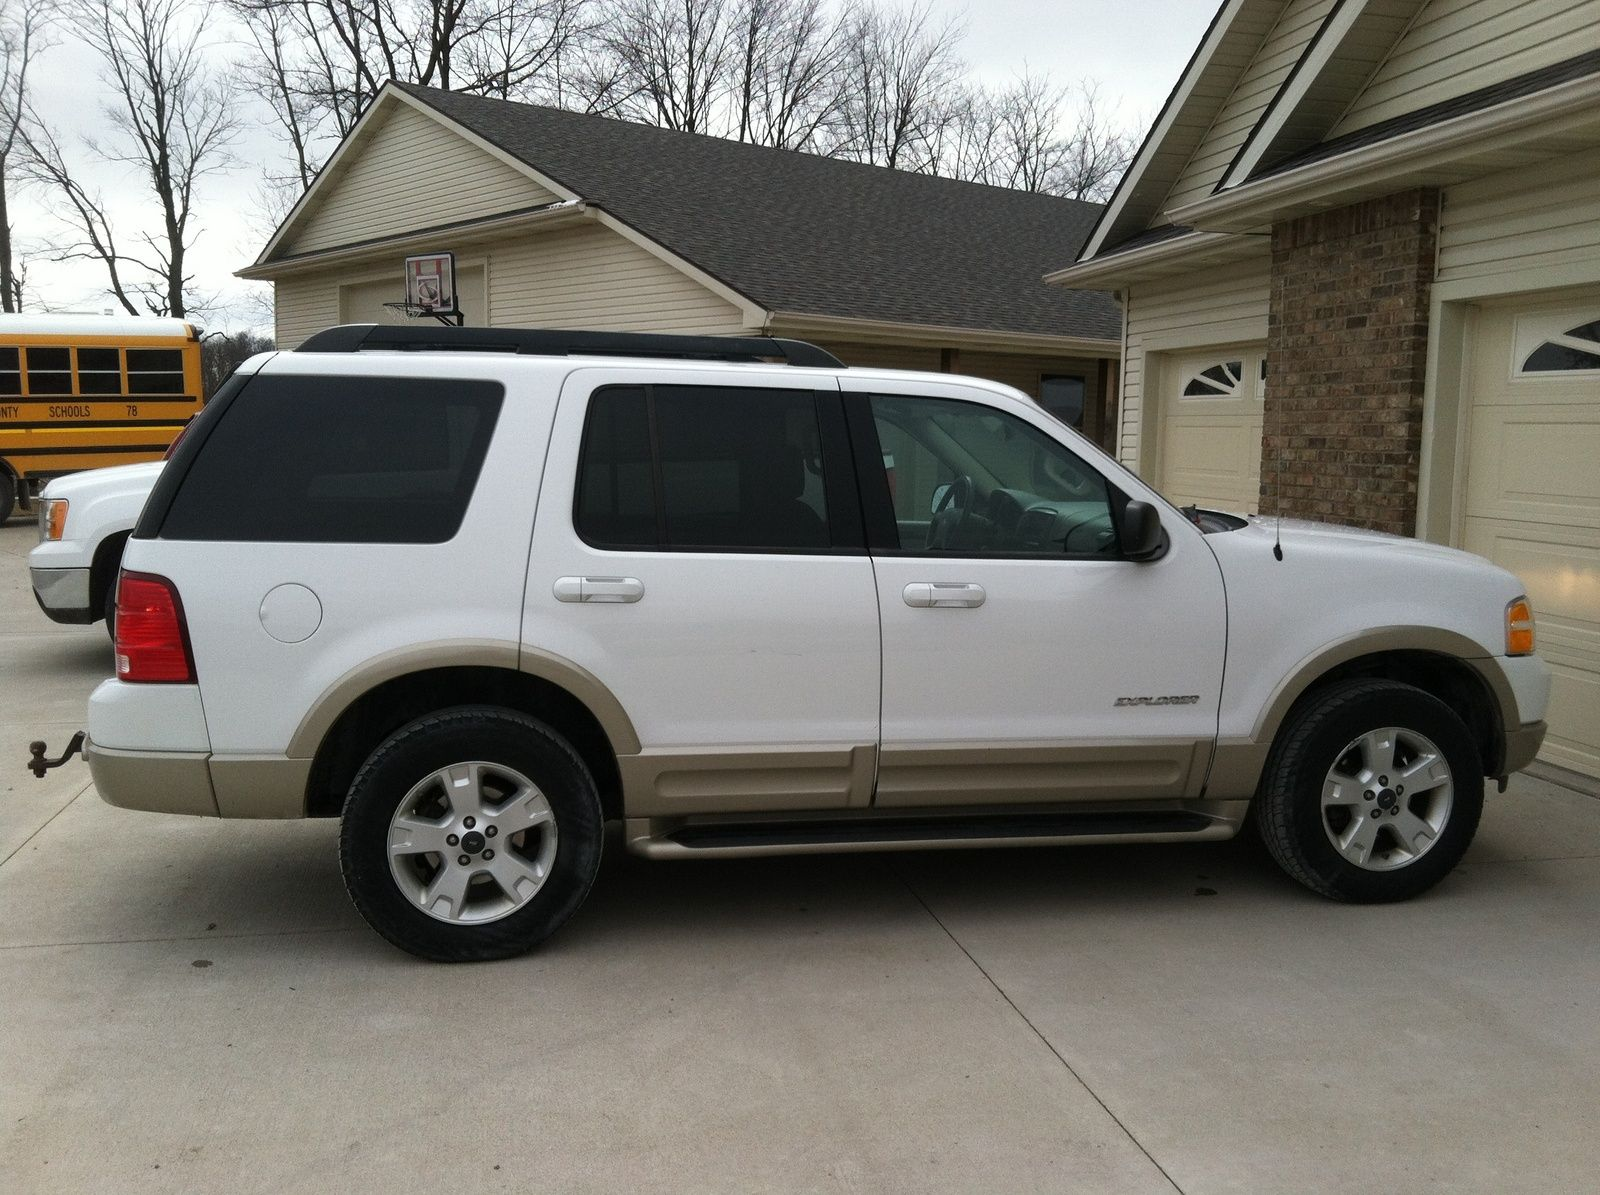 2003 ford explorer eddie bauer edition white cars i love pinterest ford explorer ford and. Black Bedroom Furniture Sets. Home Design Ideas